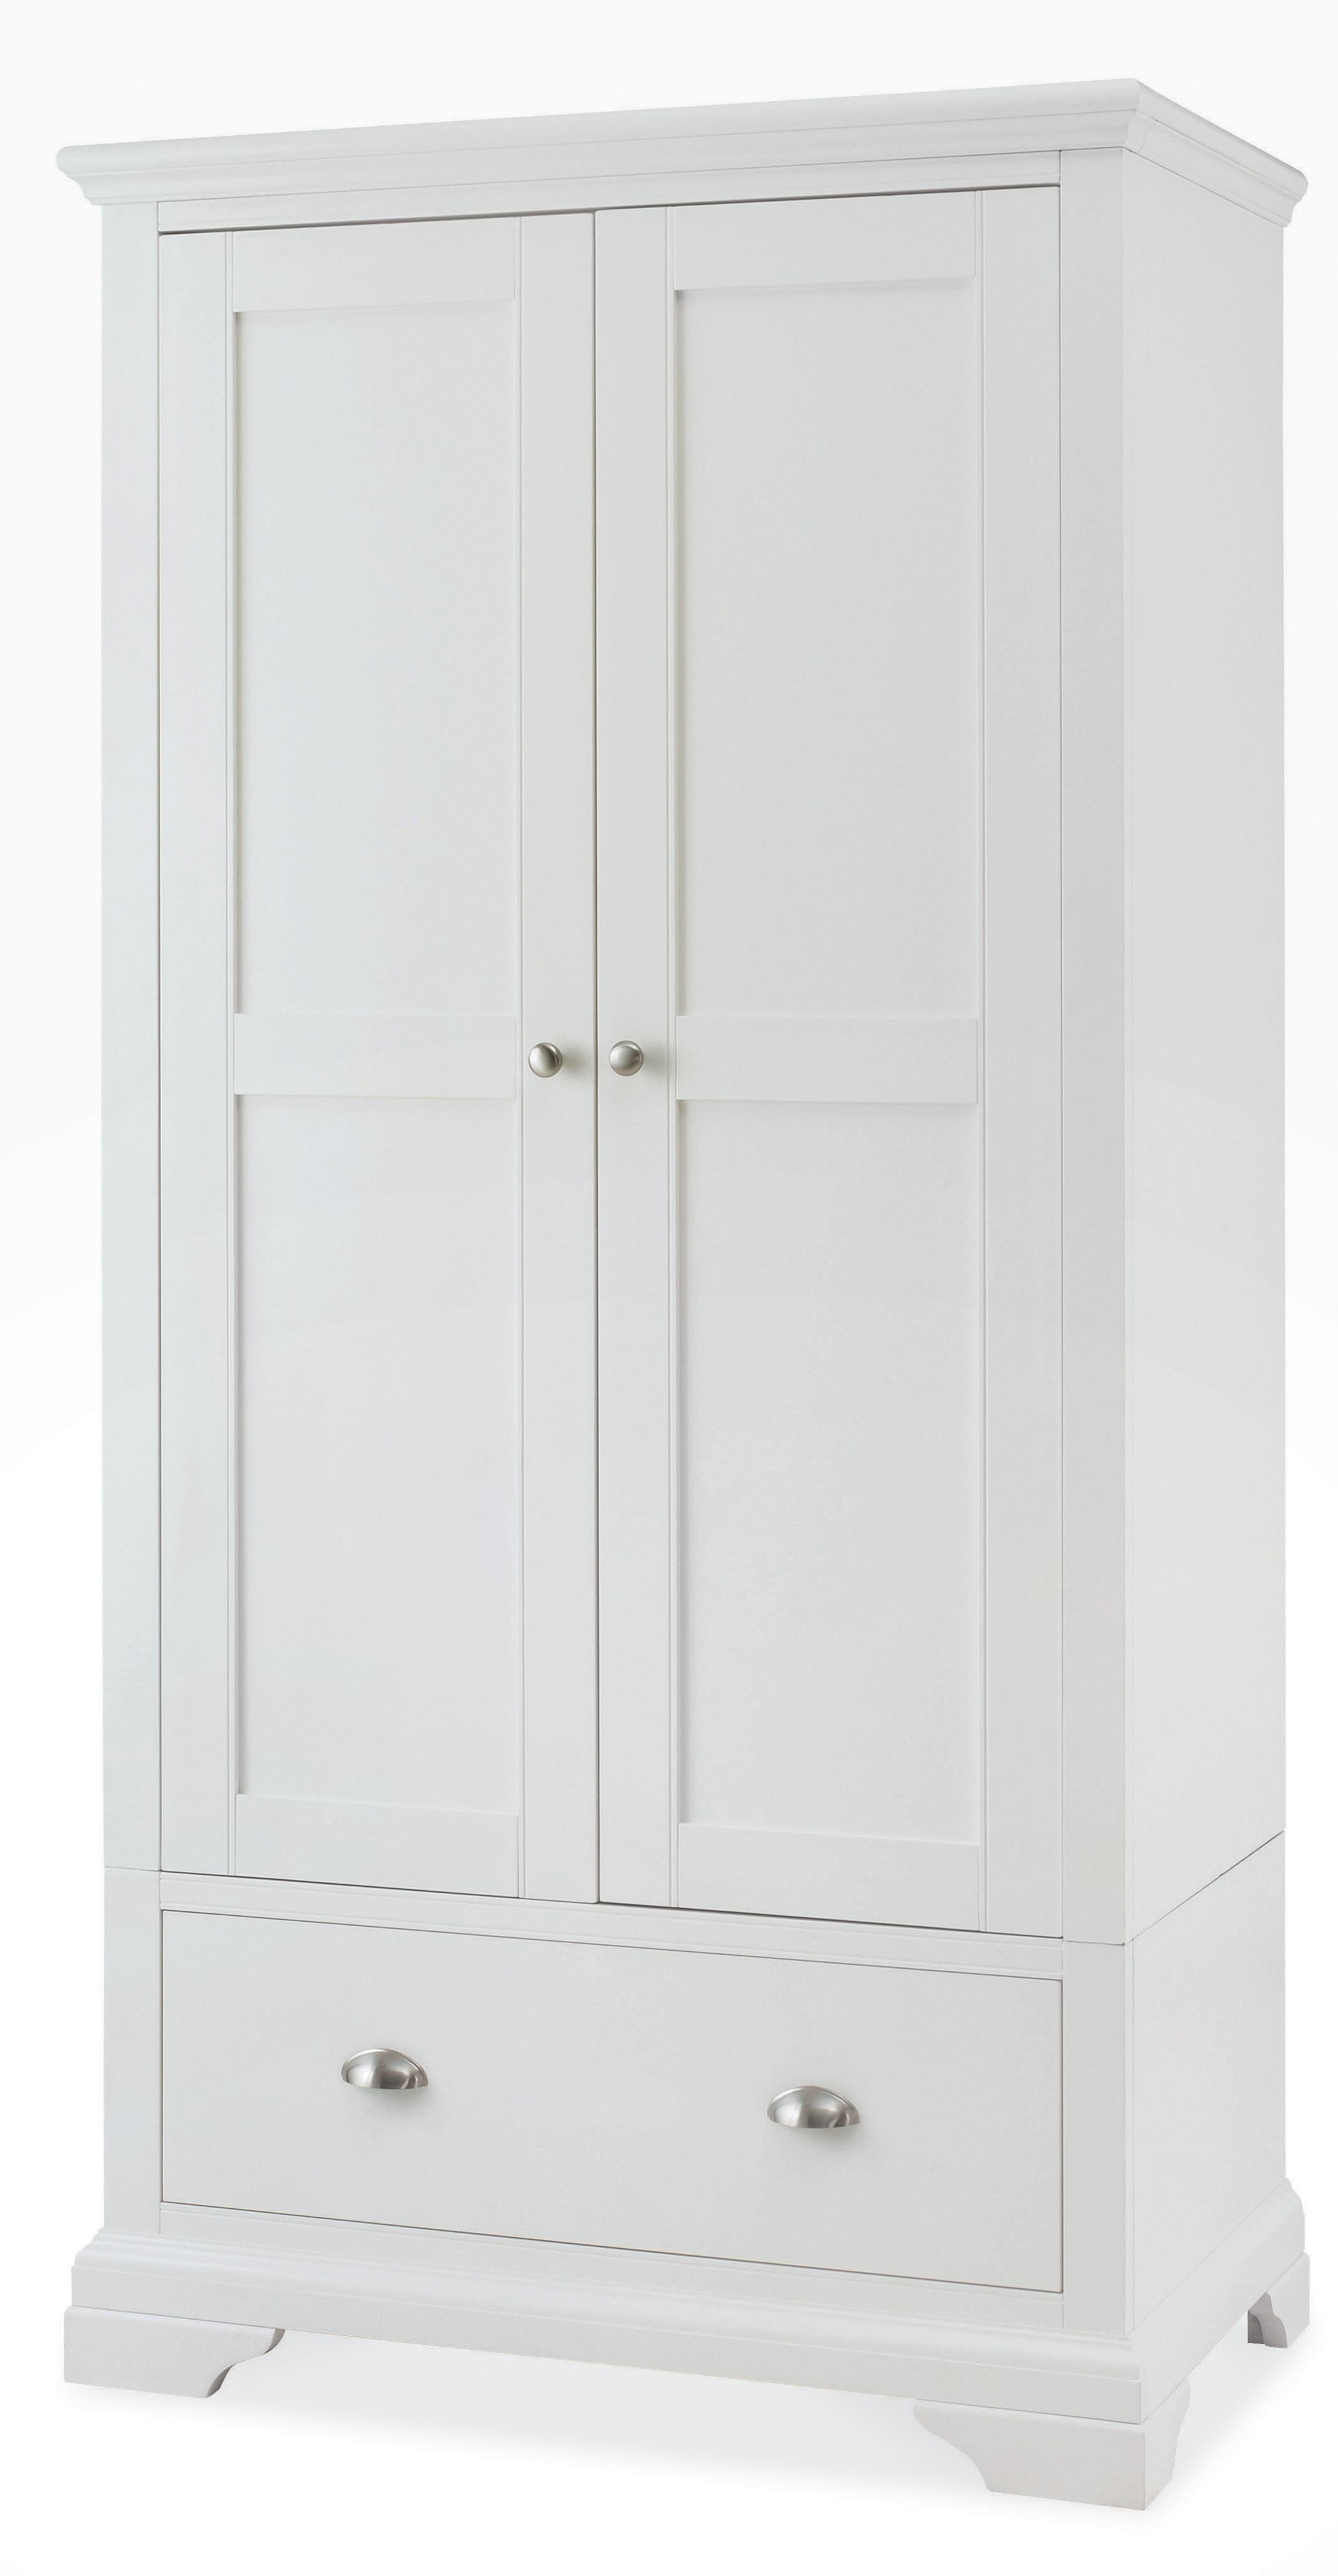 Featured Photo of White Double Wardrobes With Drawers